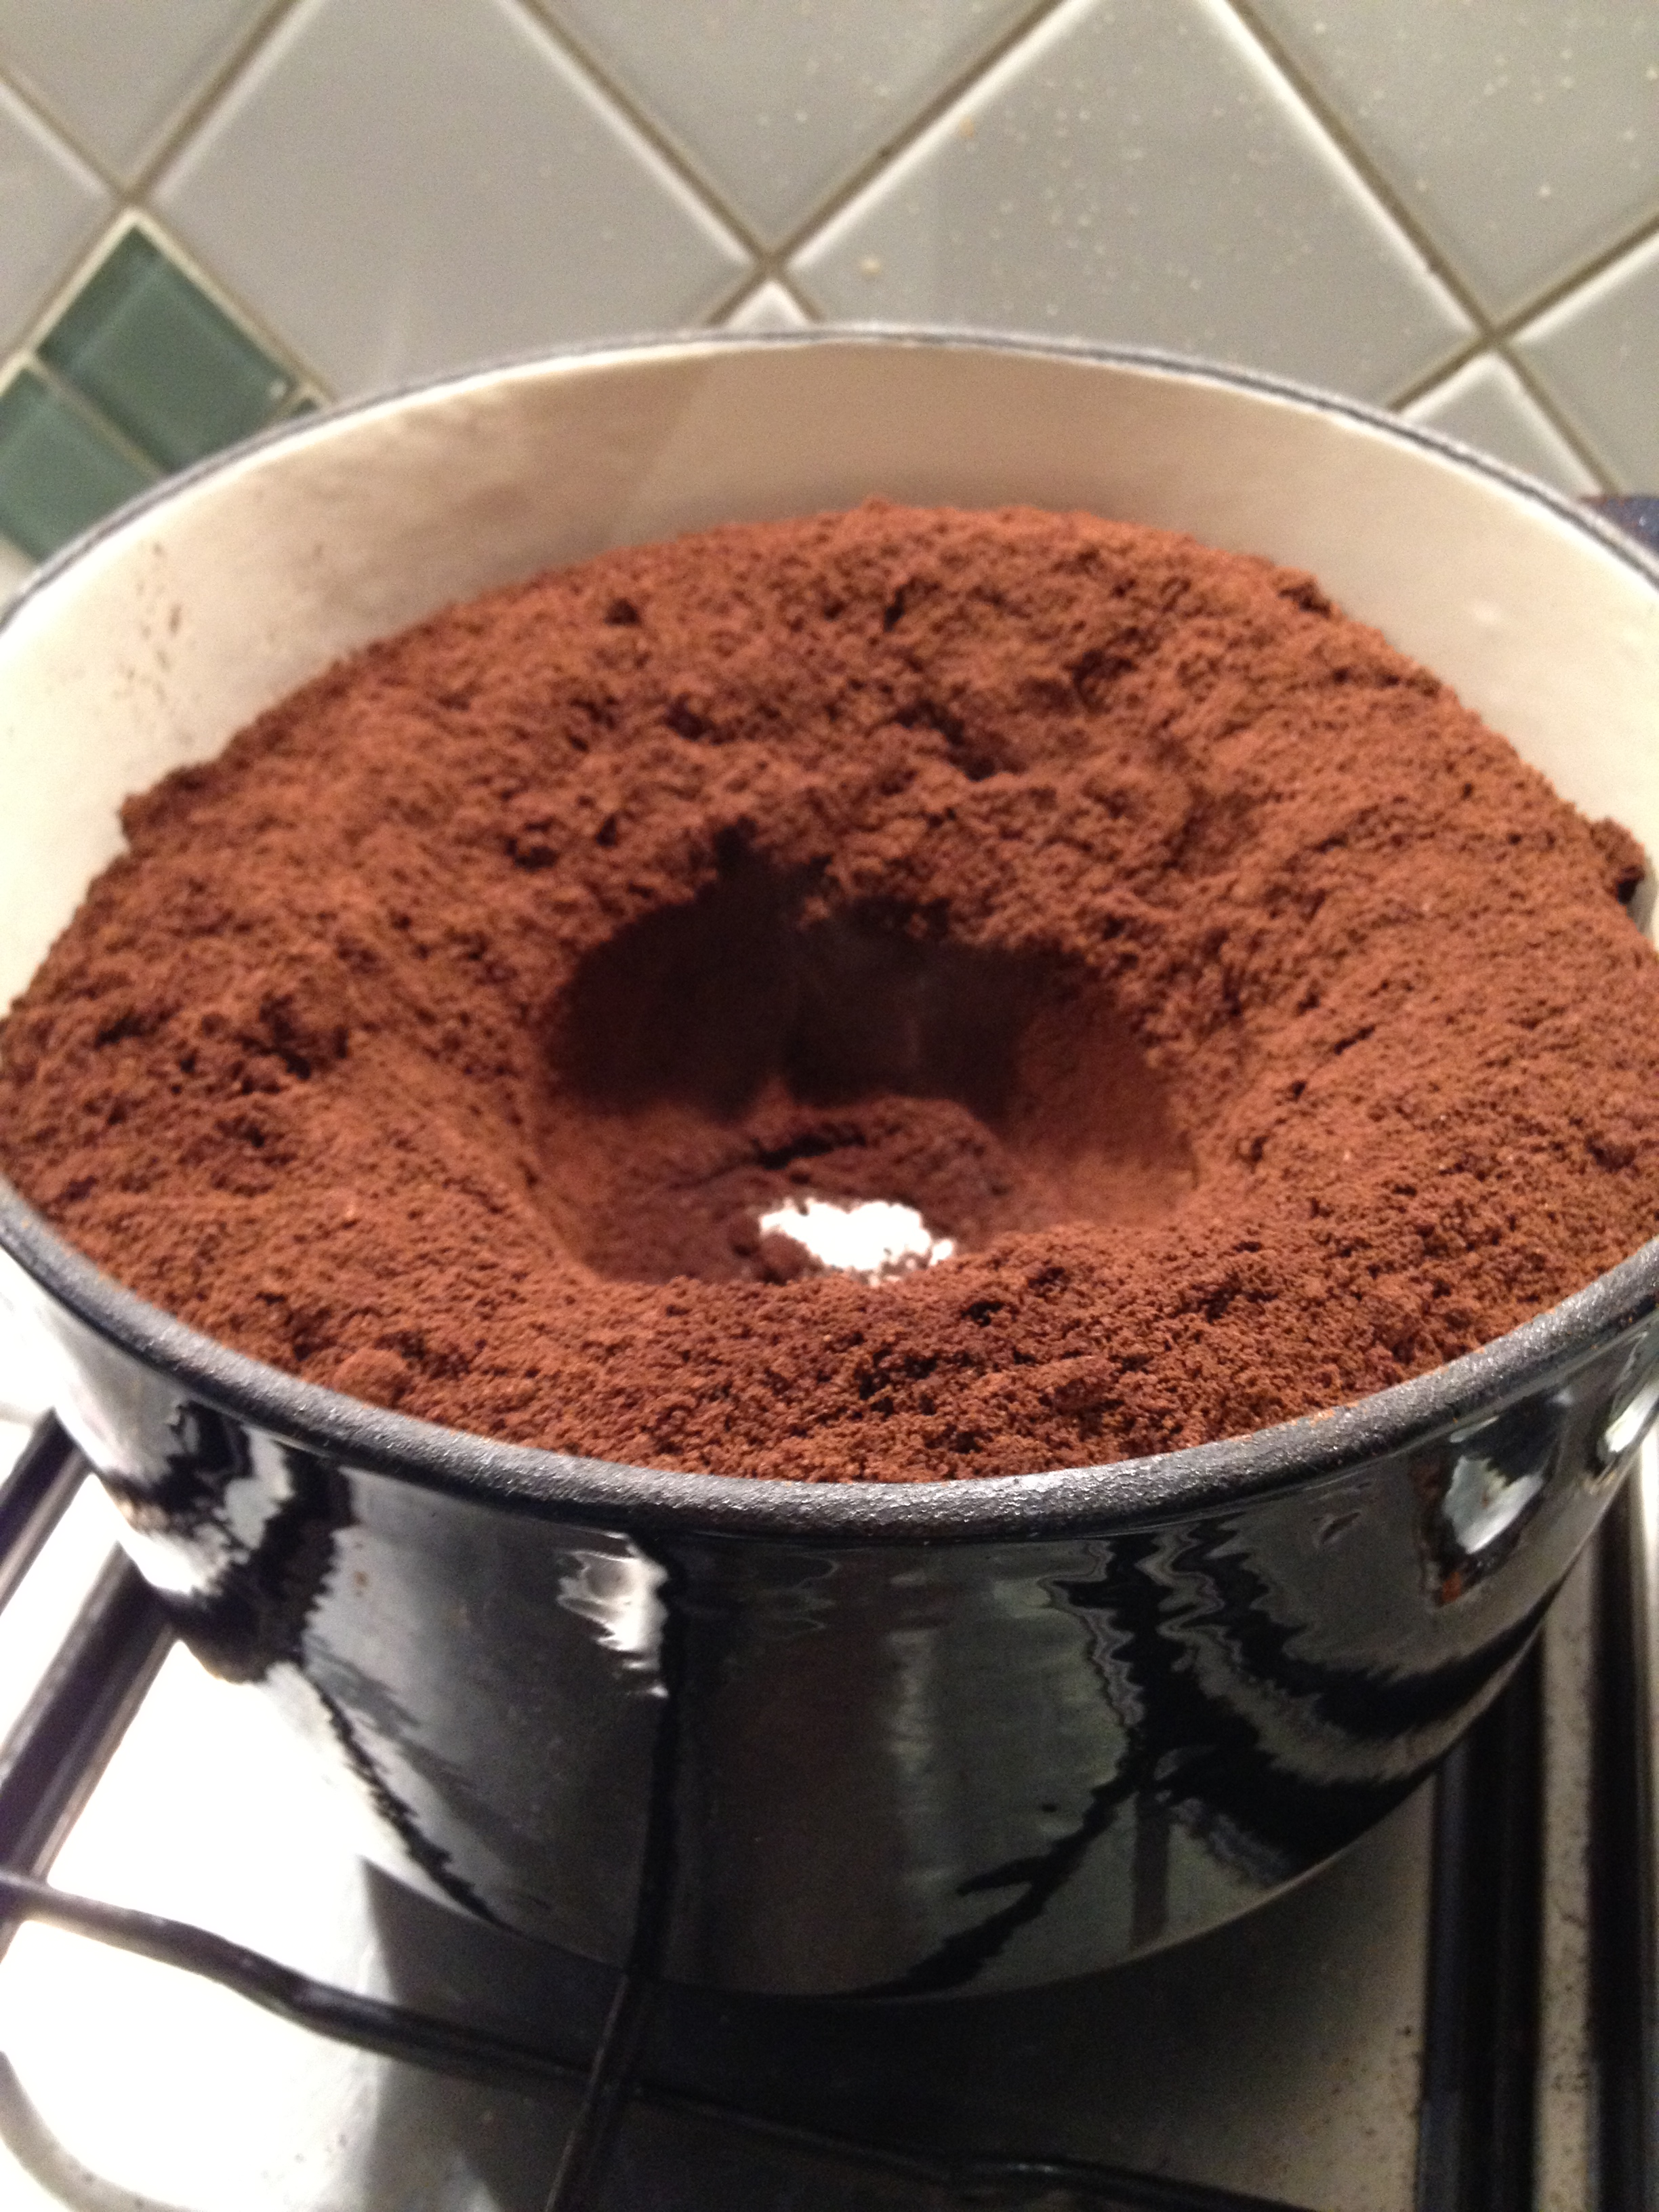 pot of coffee grounds